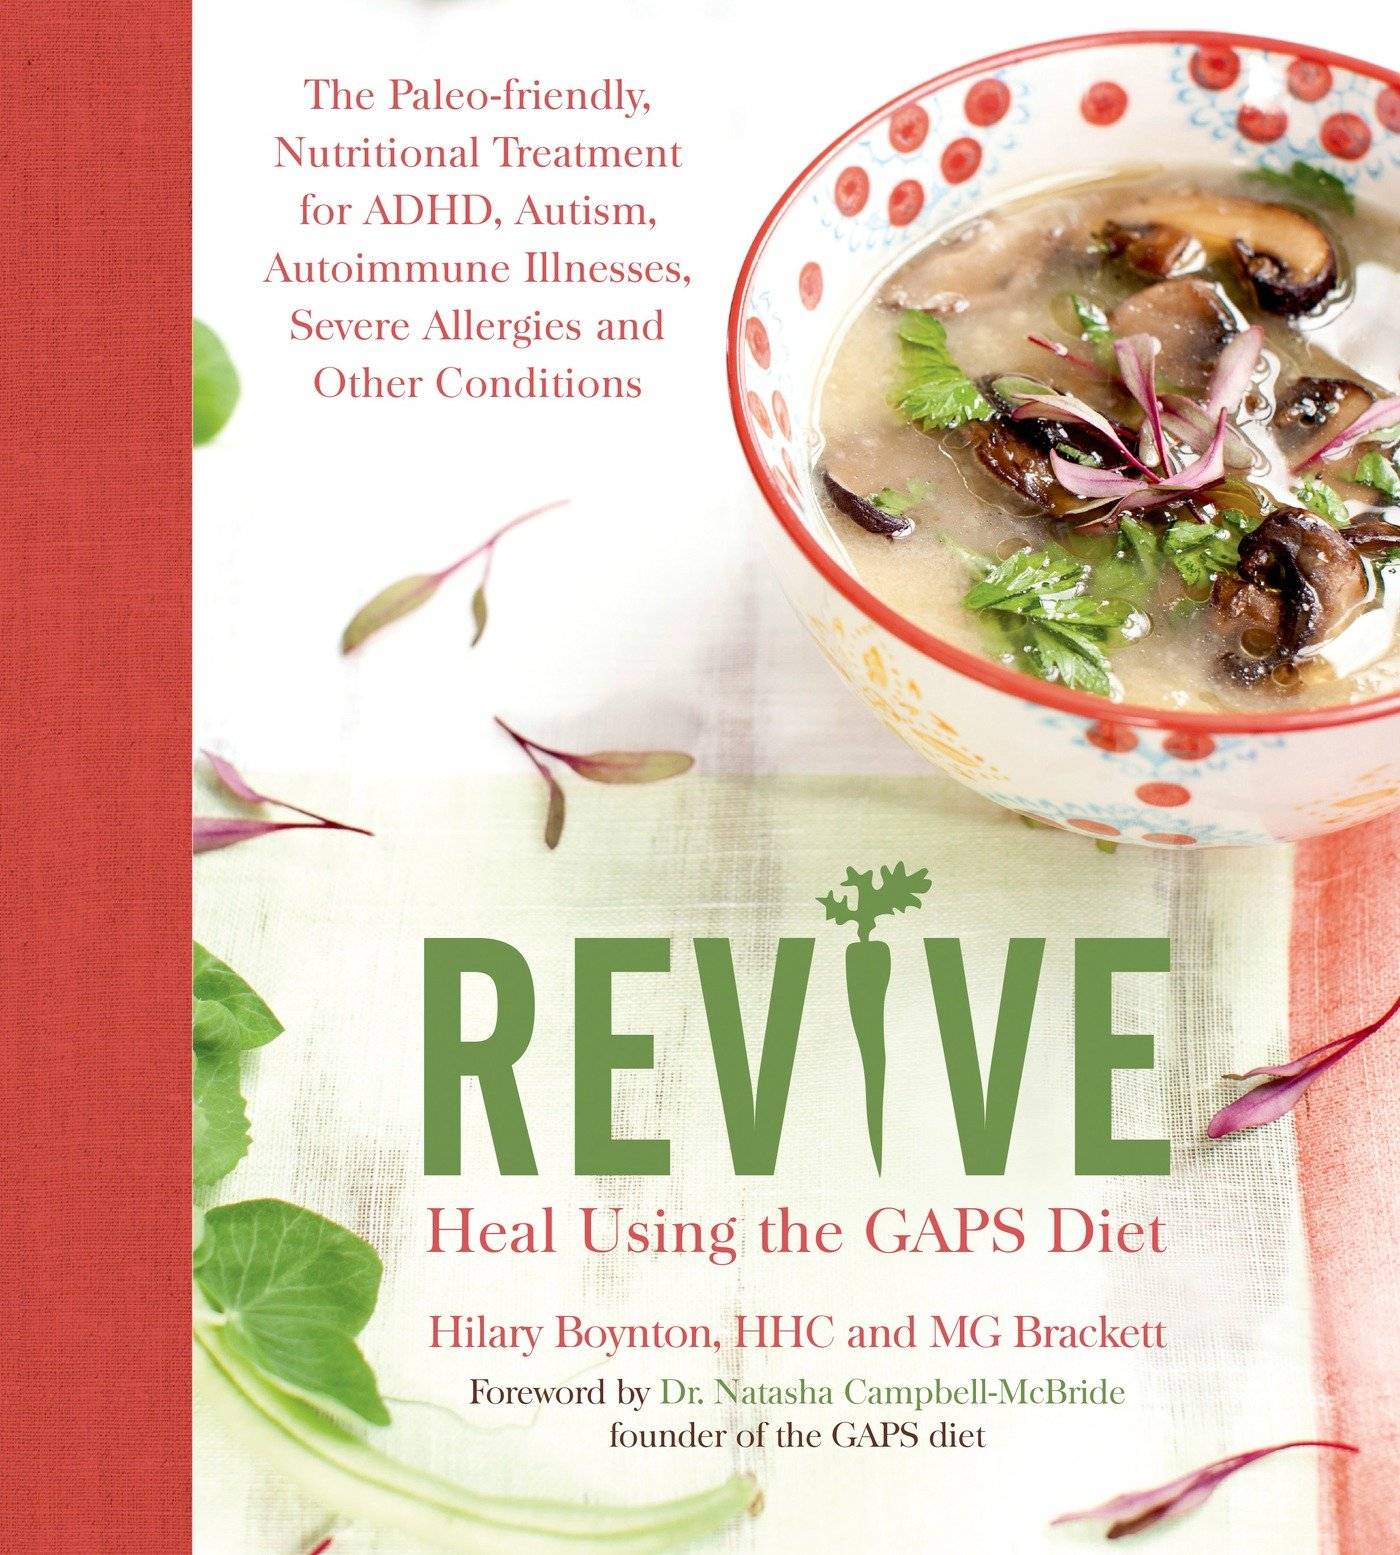 REVIVE: Heal Using the GAPS Diet: The Paleo-friendly, Nutritional Treatment for ADHD, Autism, Autoimmune Illnesses, Severe Allergies and Other Conditions